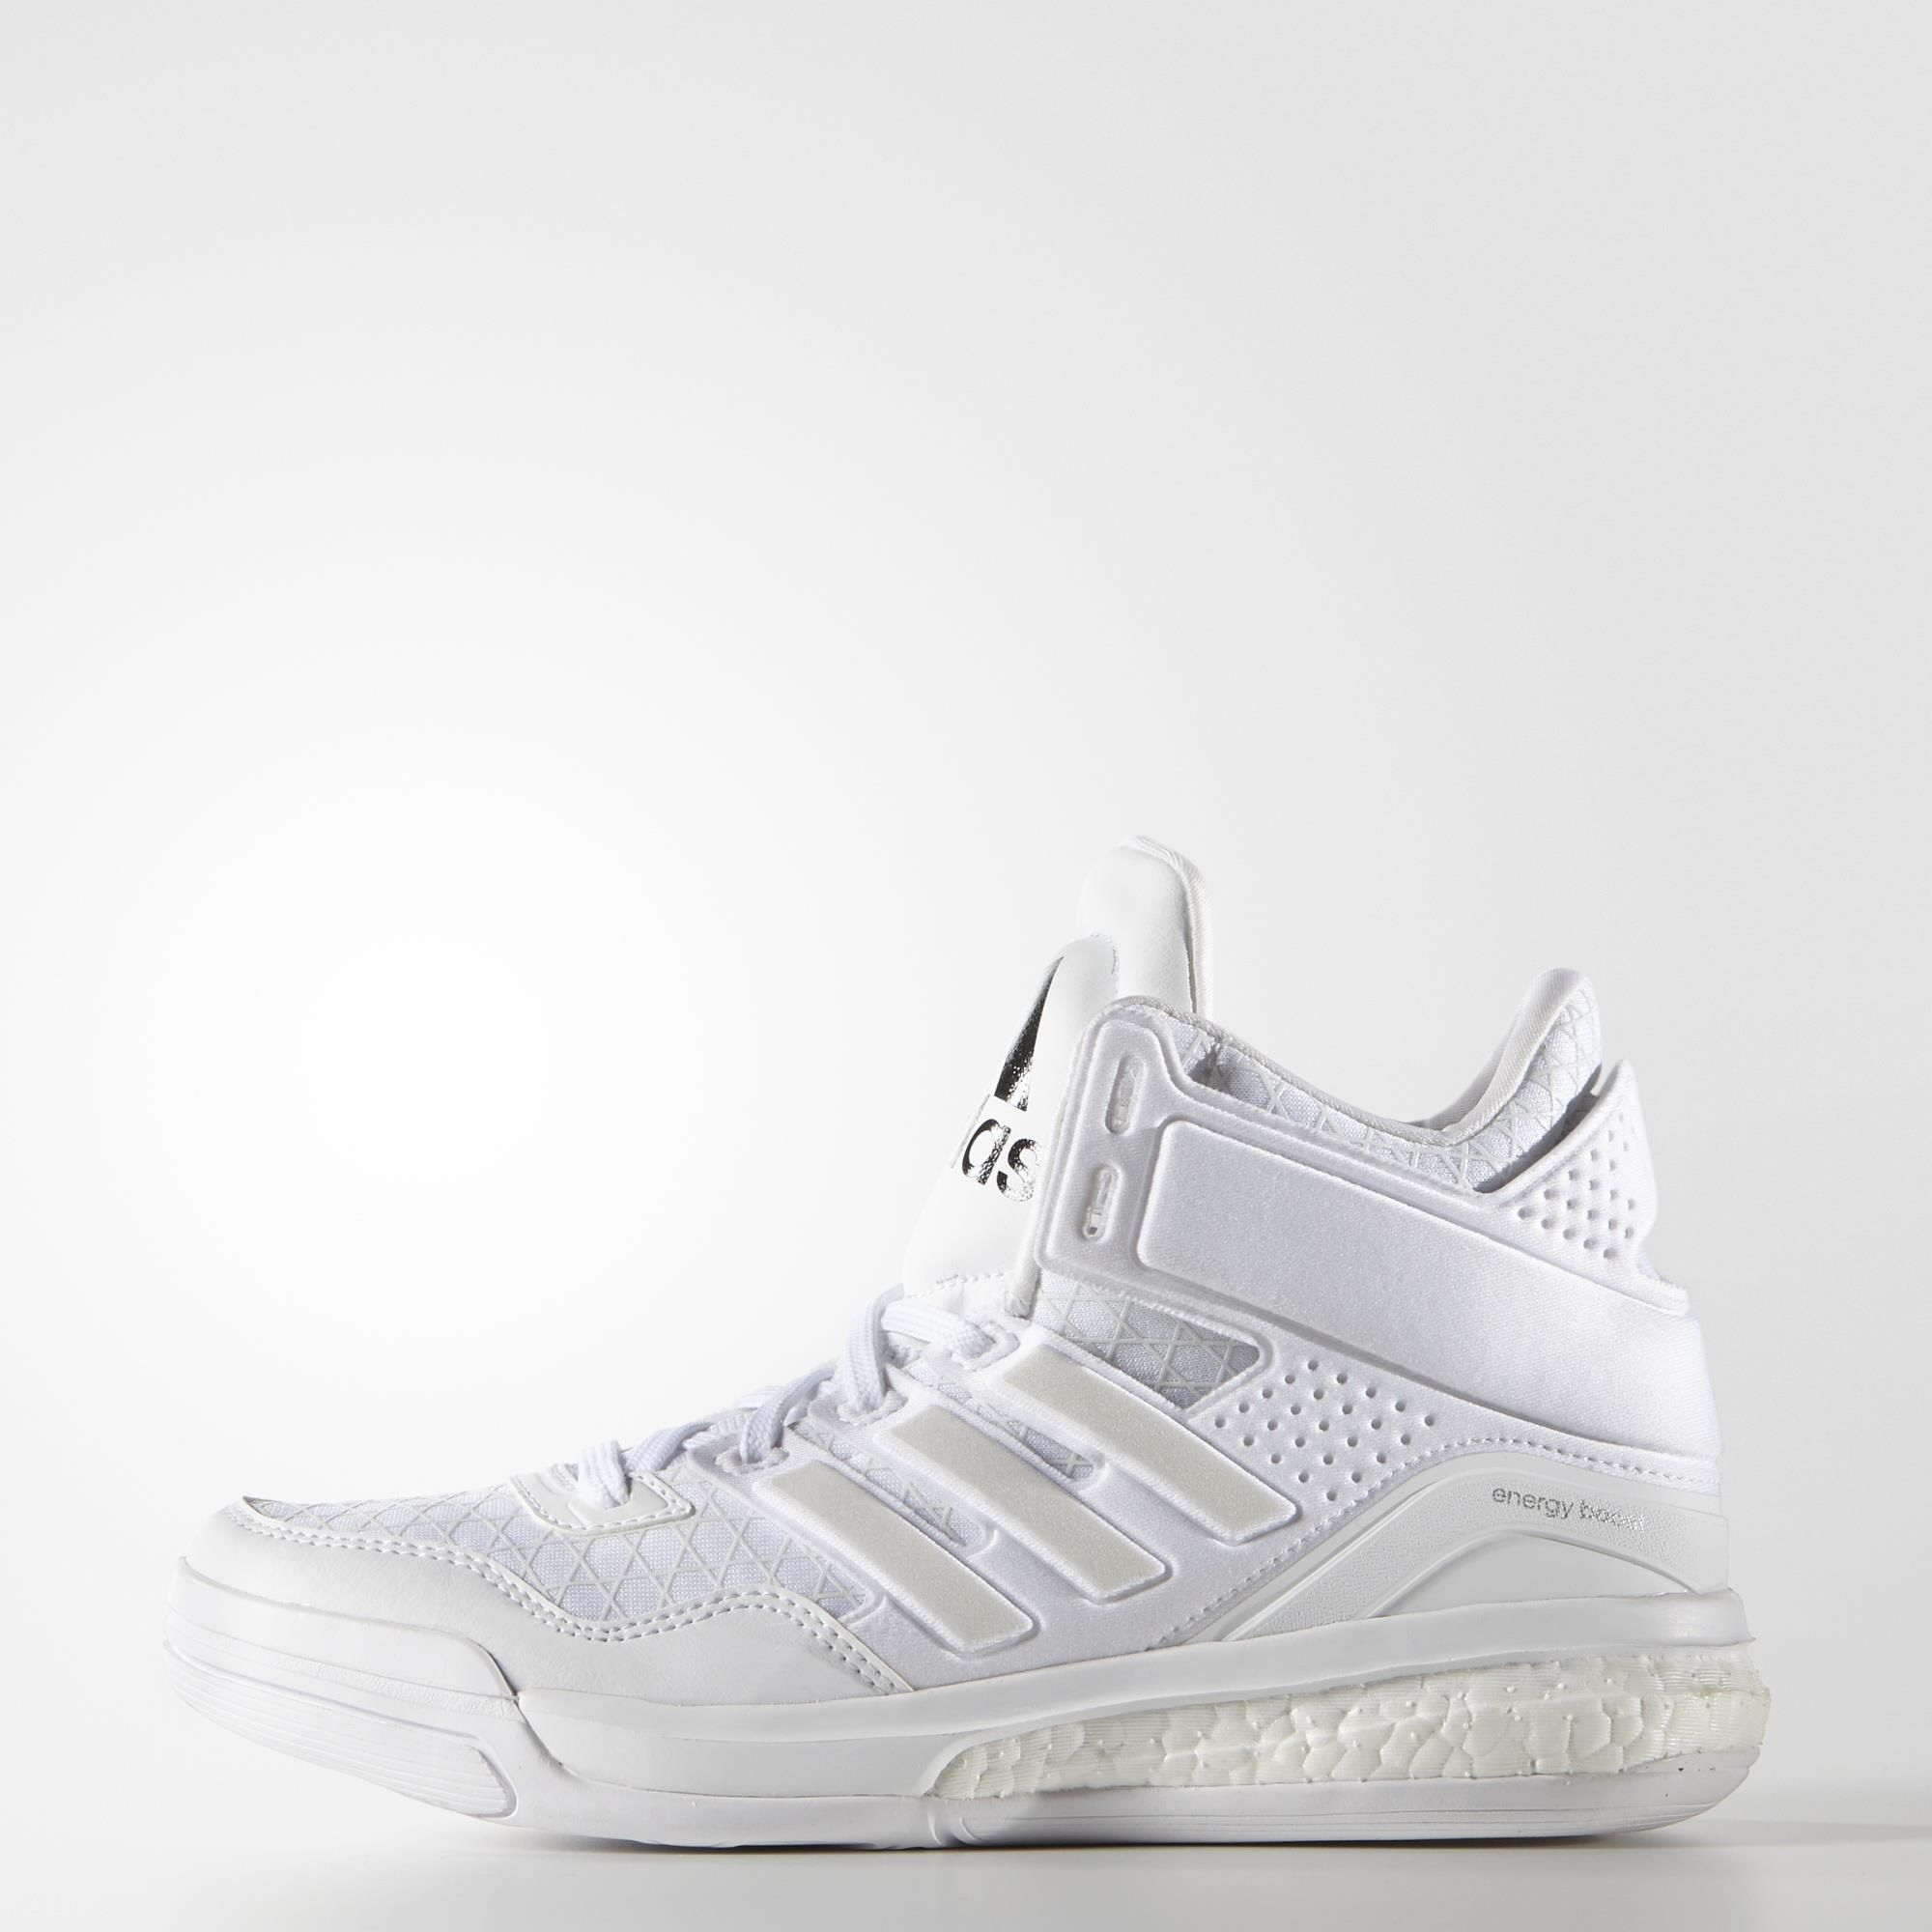 adidas Vibe Energy Boost Shoes - White | adidas US